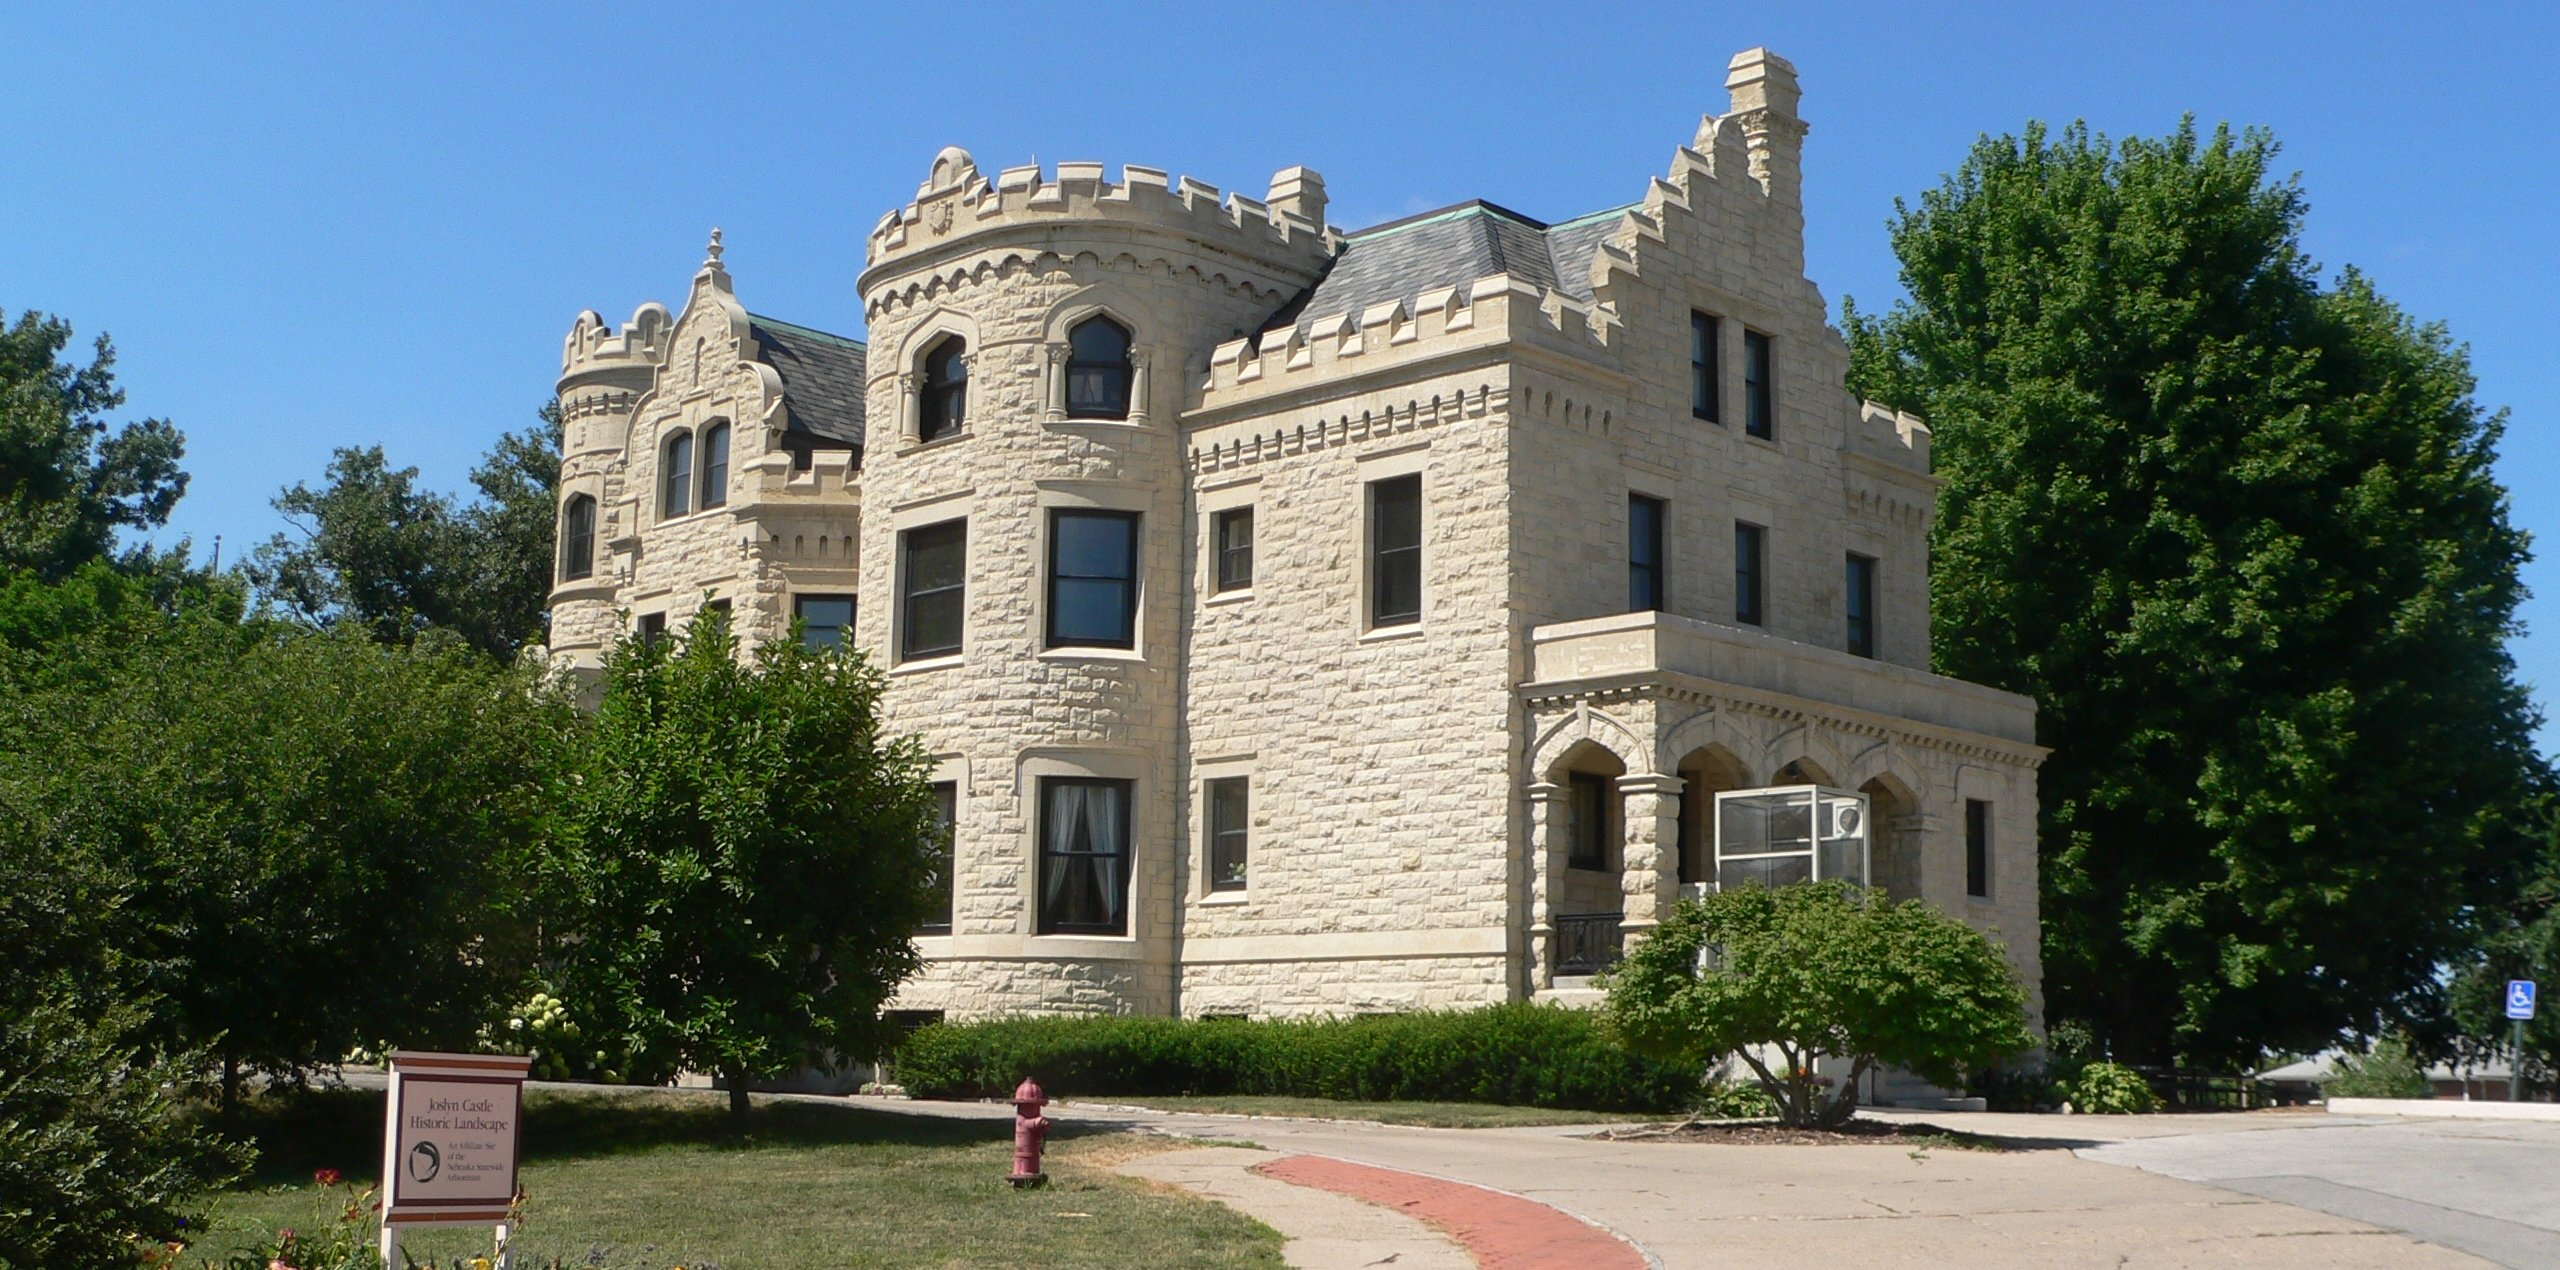 View of the northeast side of the Joslyn Castle